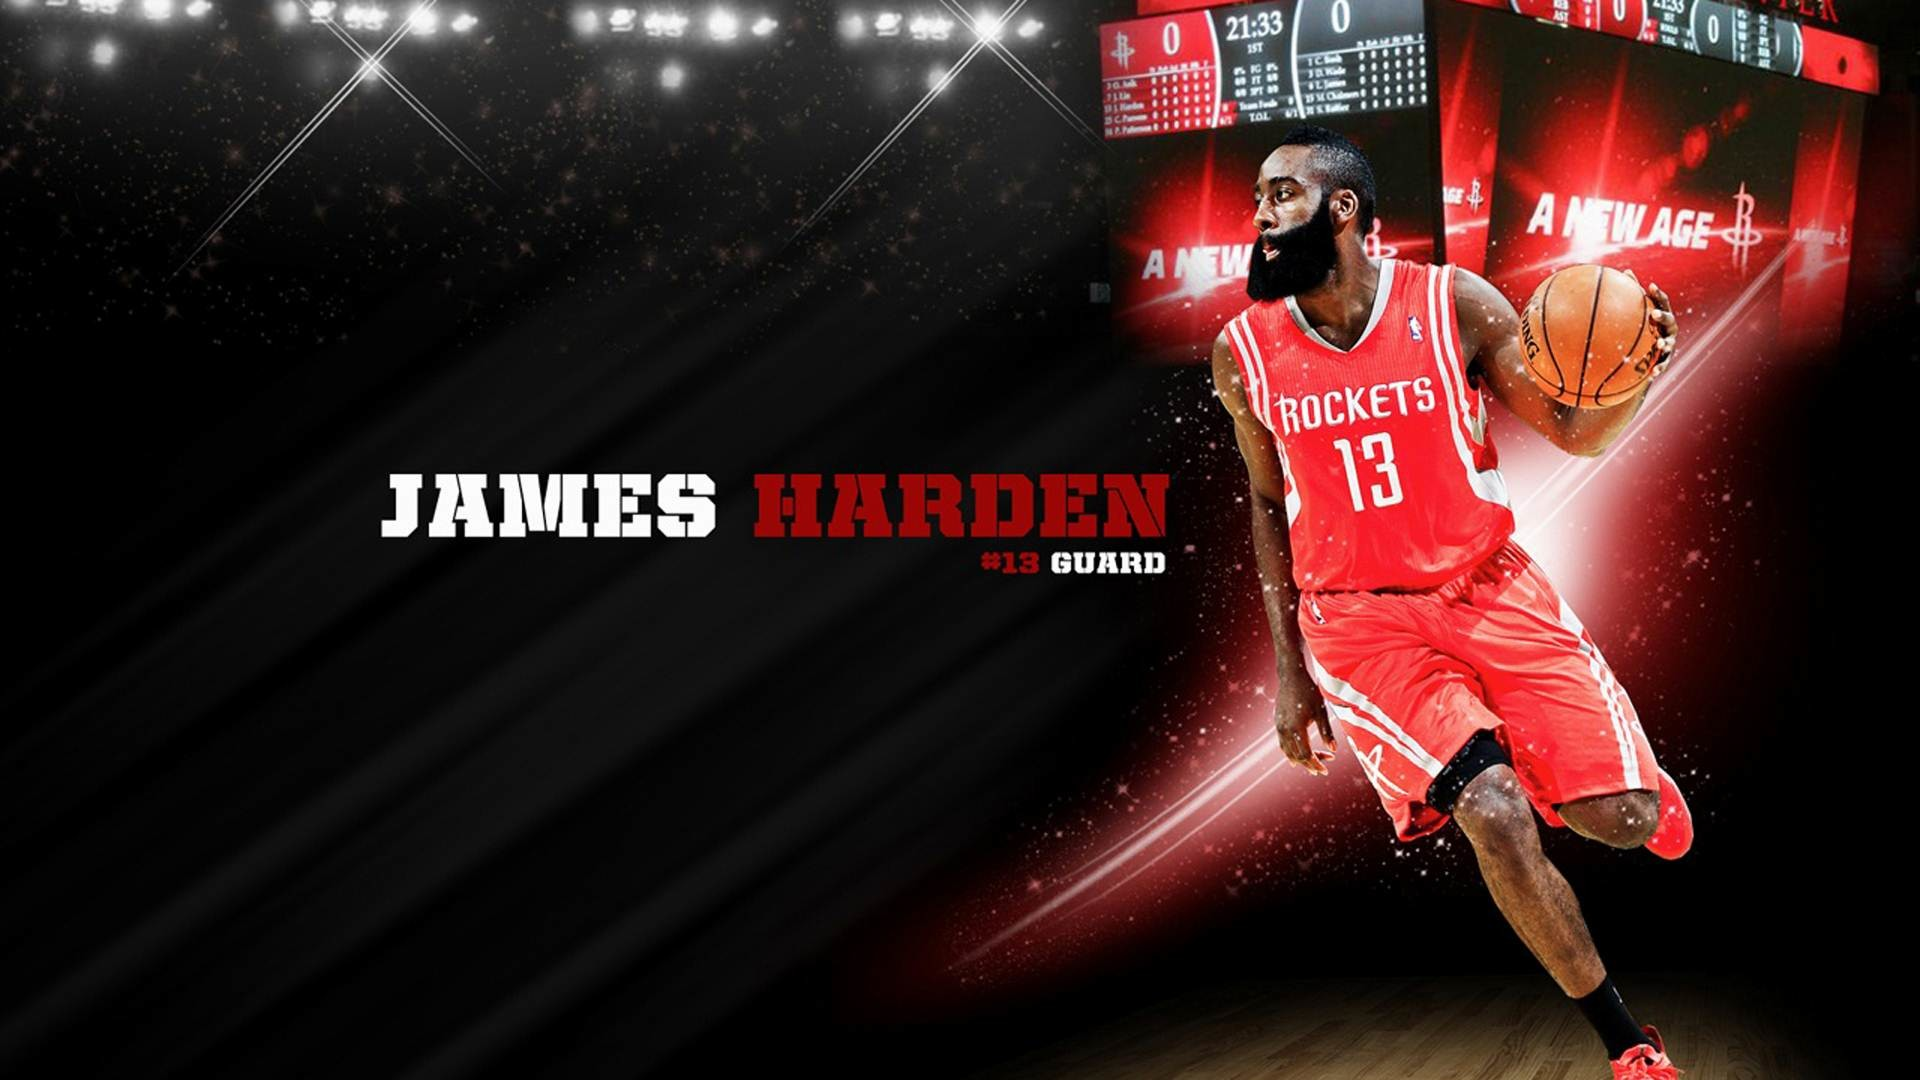 … houston rockets 698488 full hd widescreen wallpapers for …